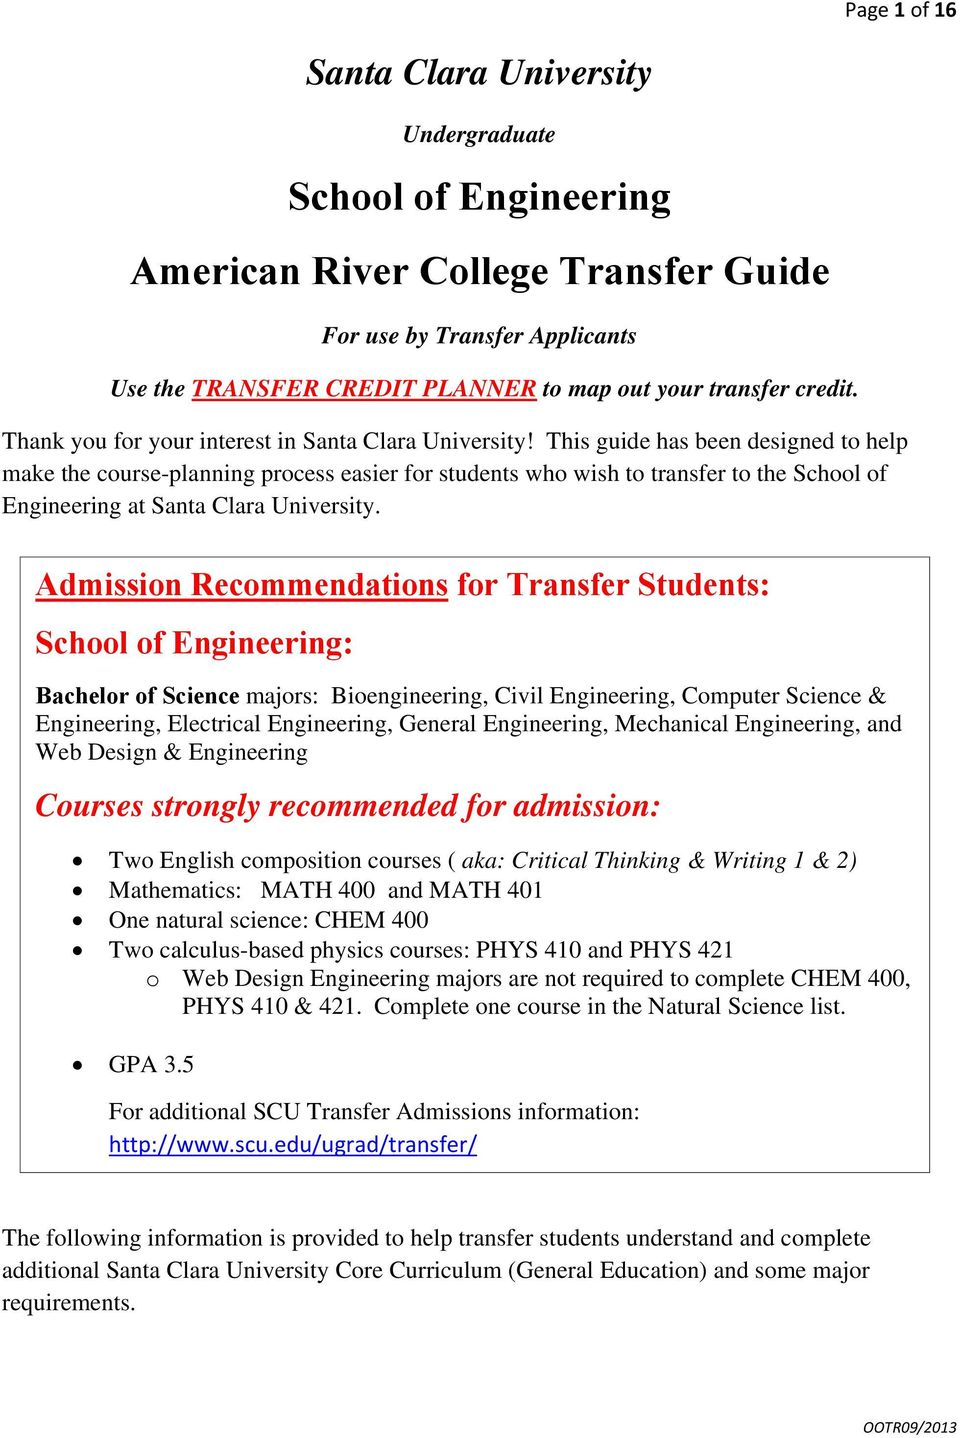 This guide has been designed to help make the course-planning process easier for students who wish to transfer to the School of Engineering at Santa Clara University.